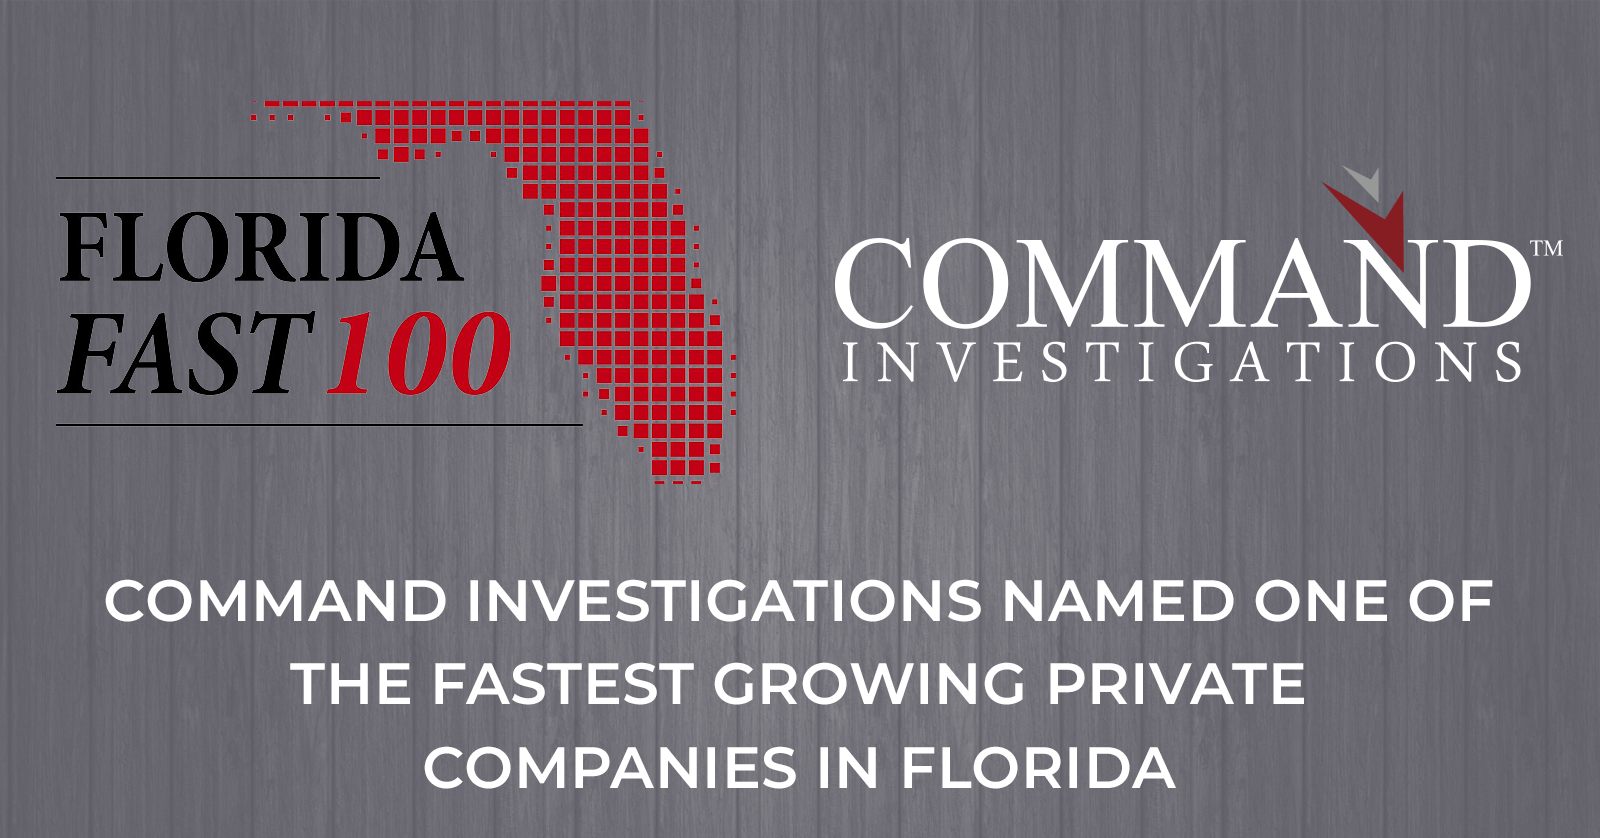 Command Investigations named one of the fastest growing private companies in Florida